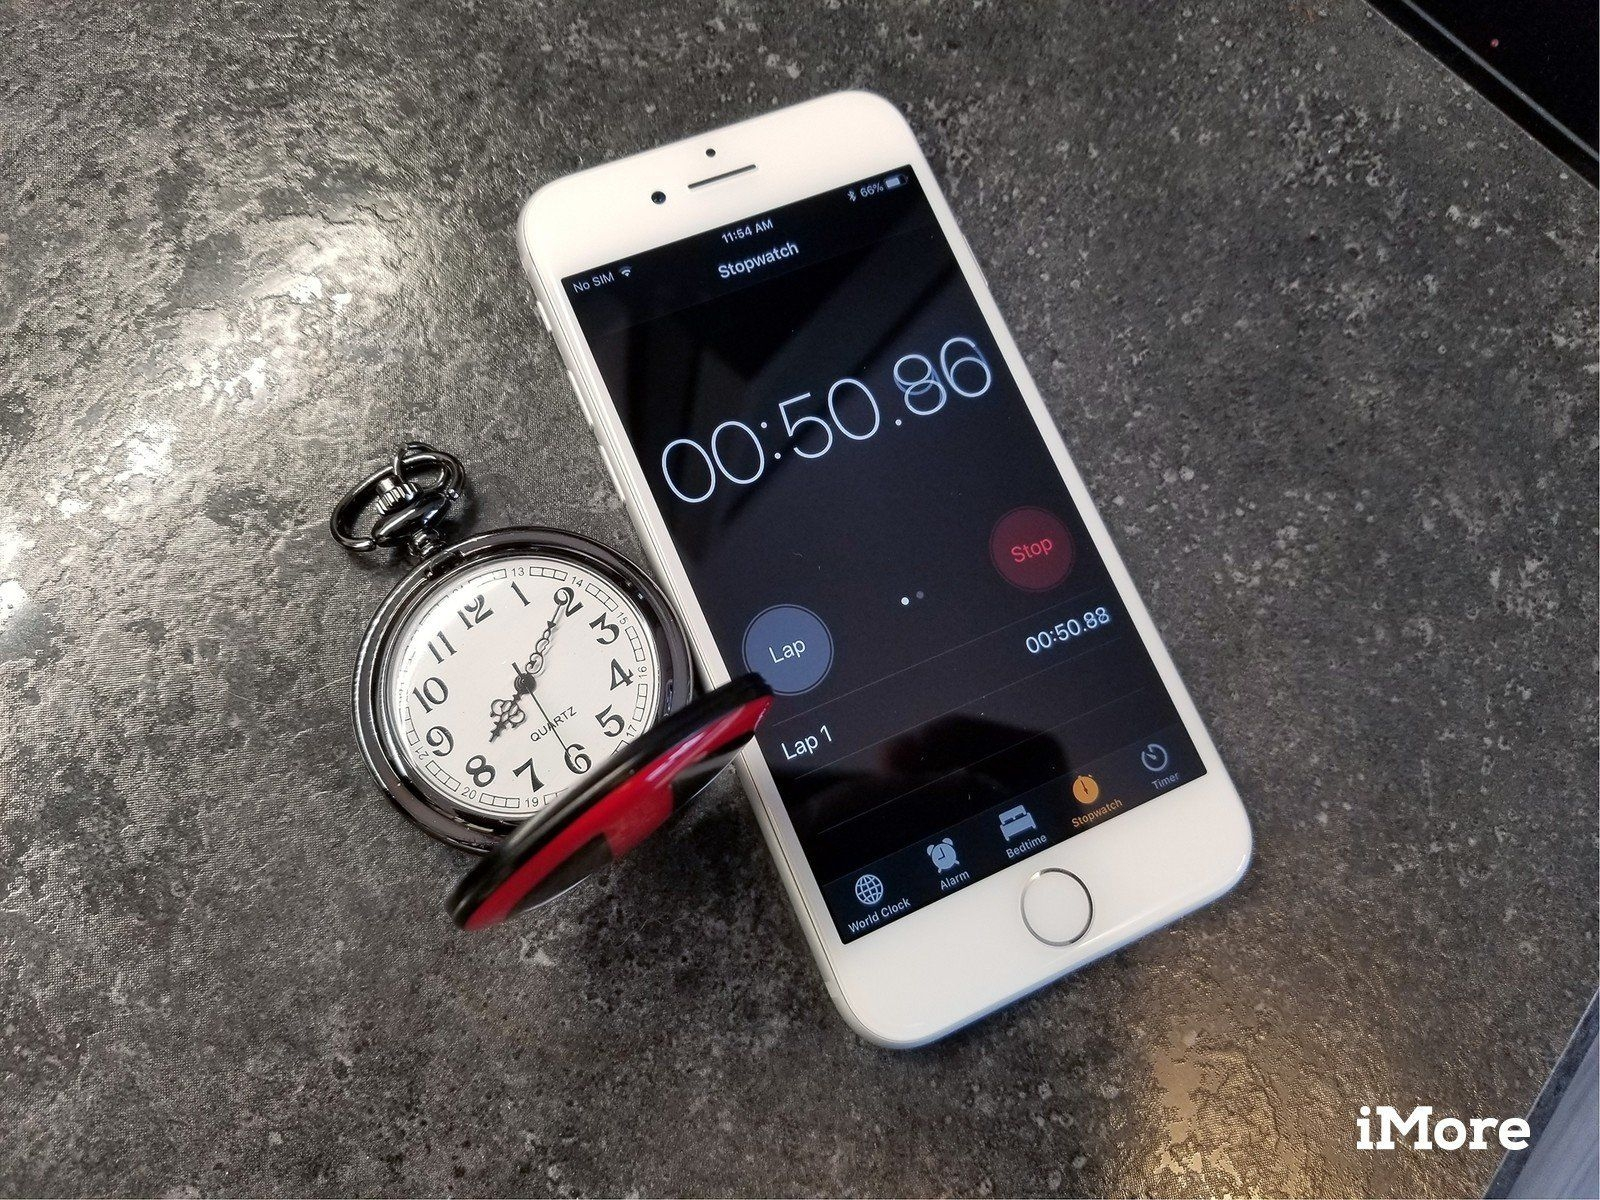 How To Use The Stopwatch On Iphone And Ipad | Imore